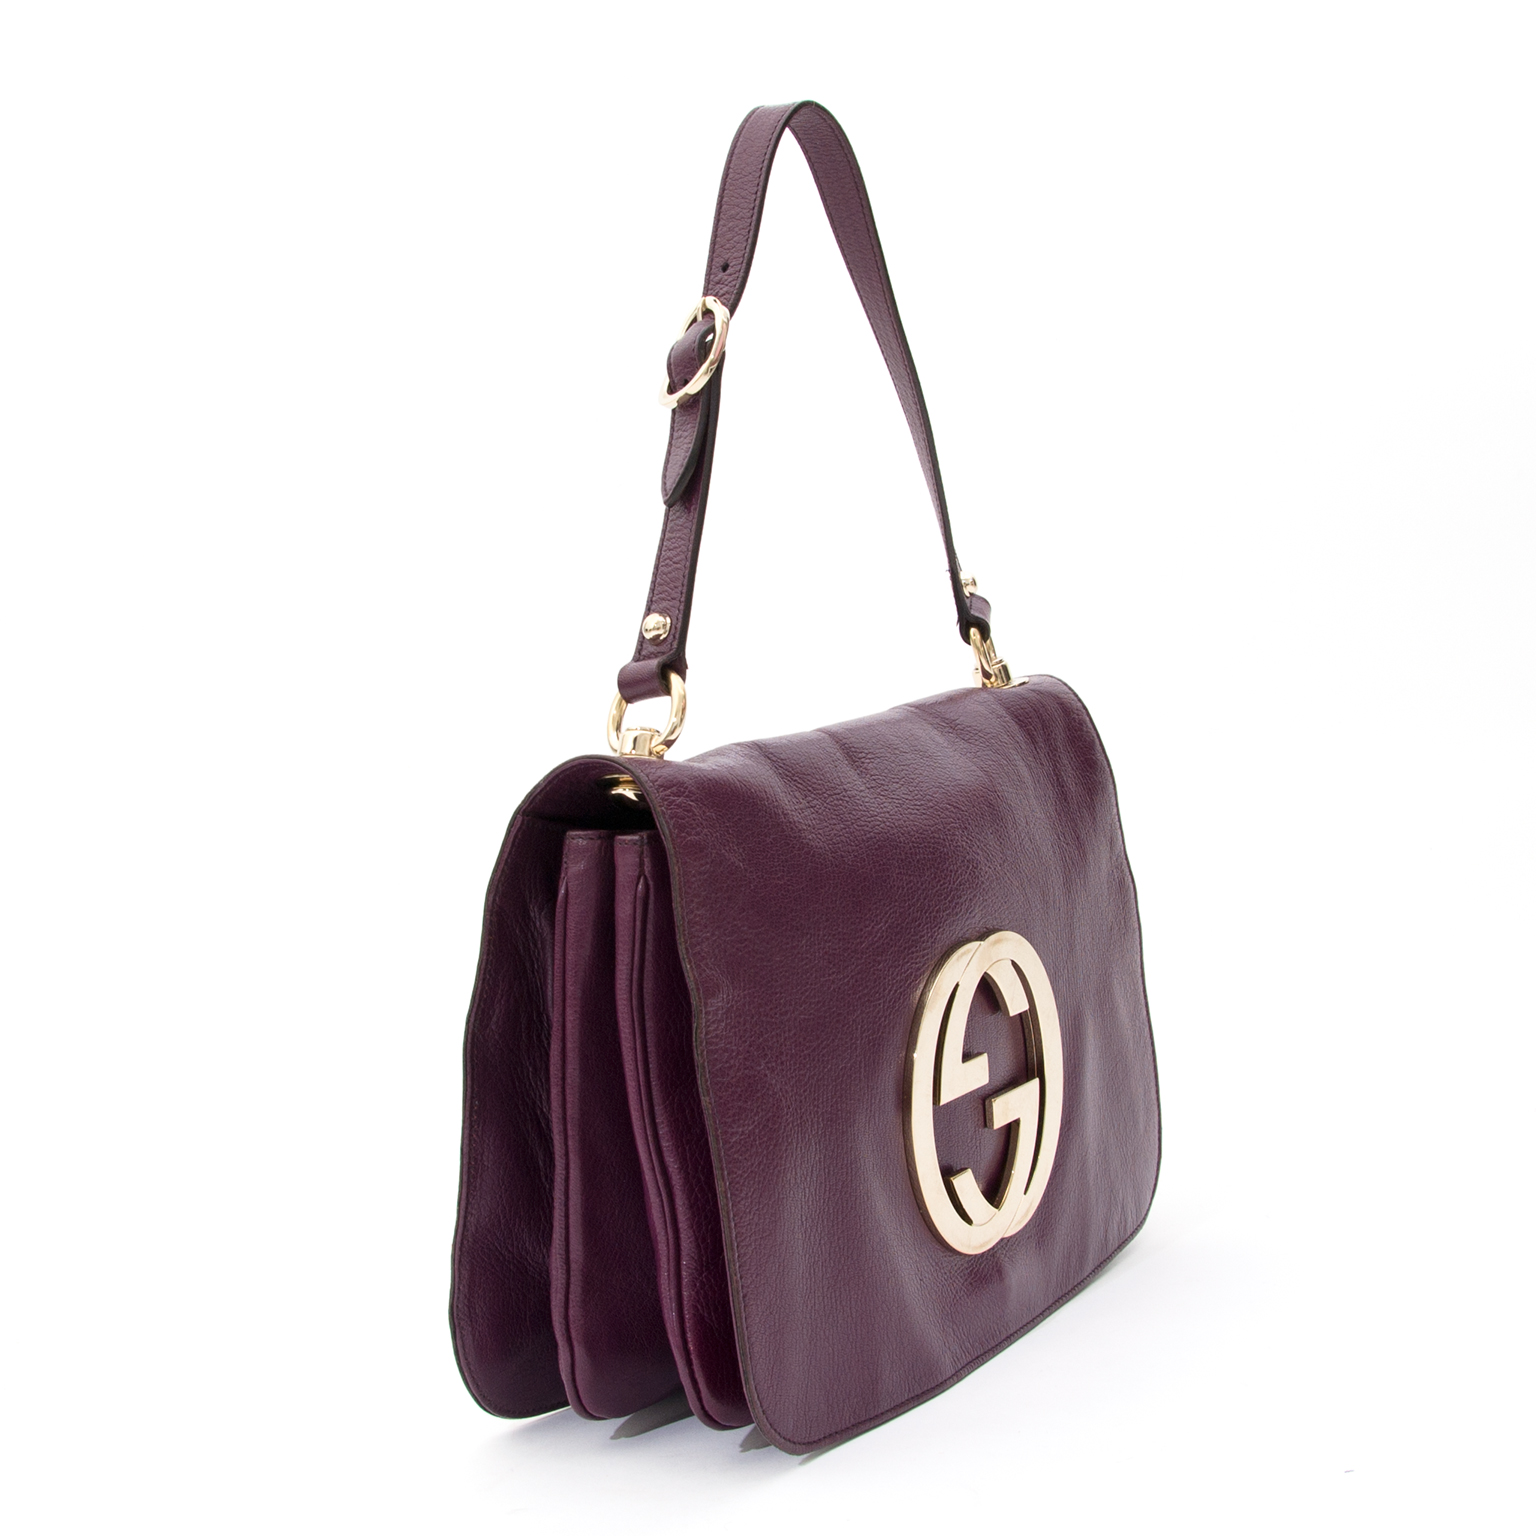 bb083c9d05eb8 ... Preowned Gucci Gold CG Monogram Aubergine Flap Bag. Labellov provides a  platform to buy and